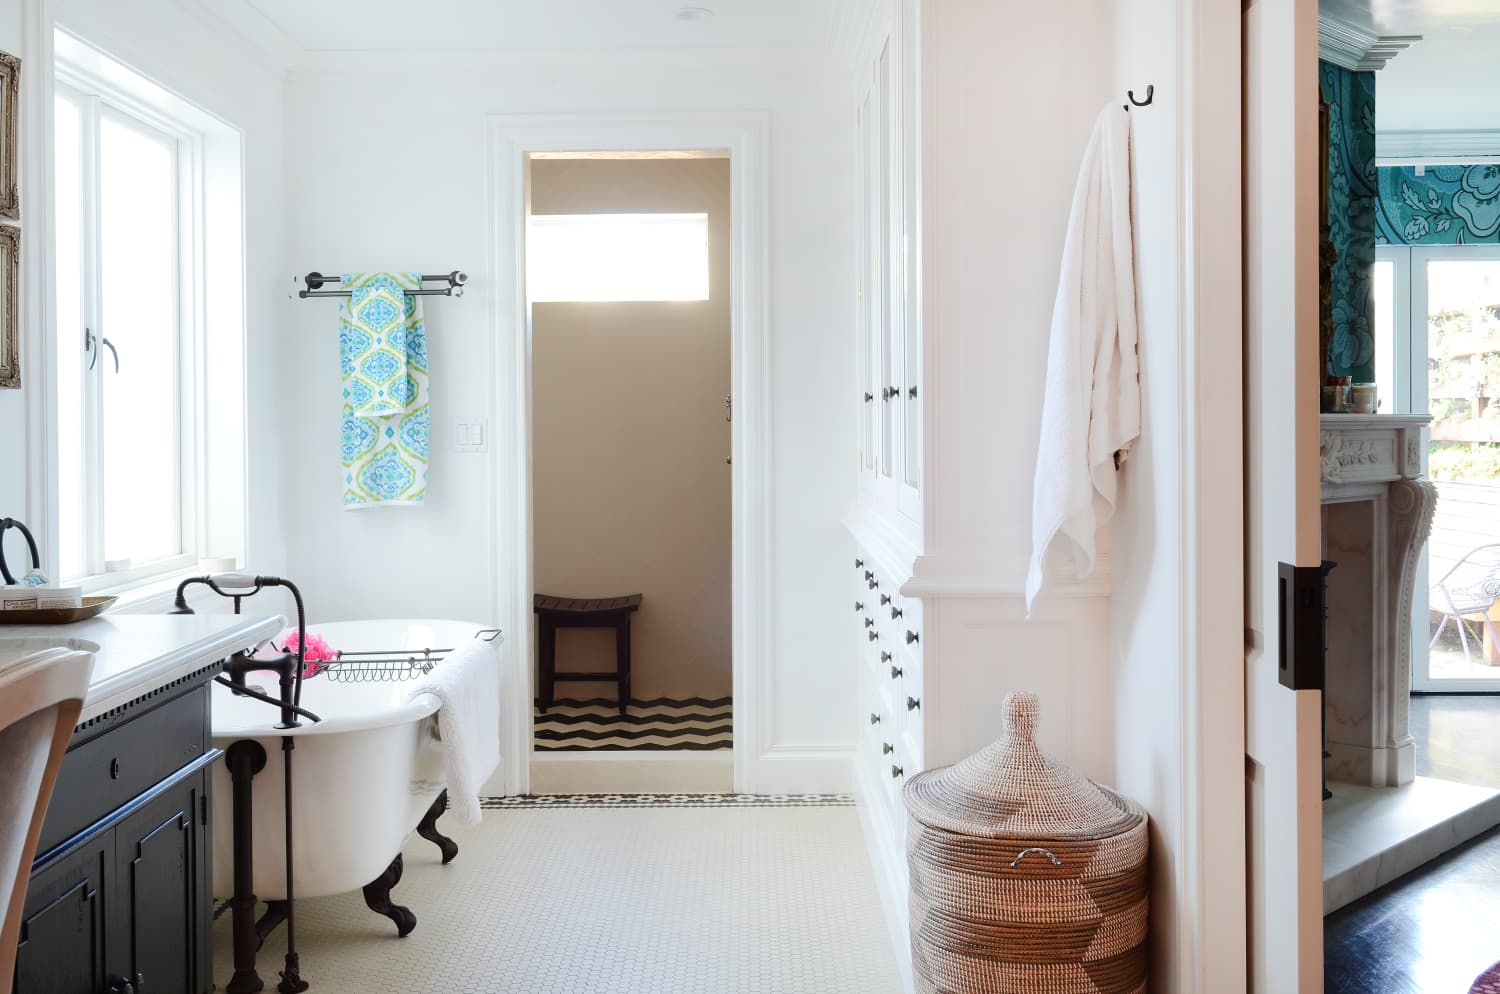 The $40 Shower Curtain 4 Apartment Therapy Editors All Bought for Their Bathrooms